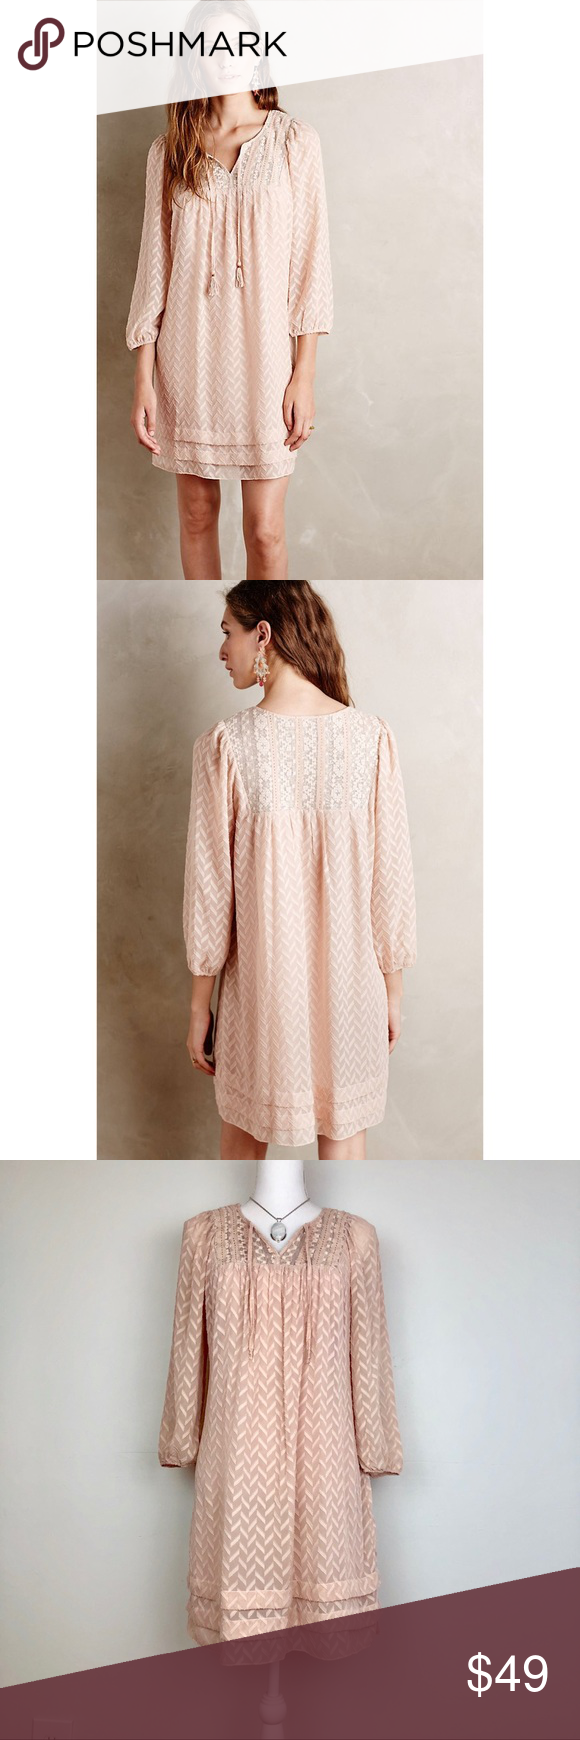 913a6145c7e45 Anthro Anwen Peasant Dress By One September. Woven viscose with sheer  embroidered cotton yoke,